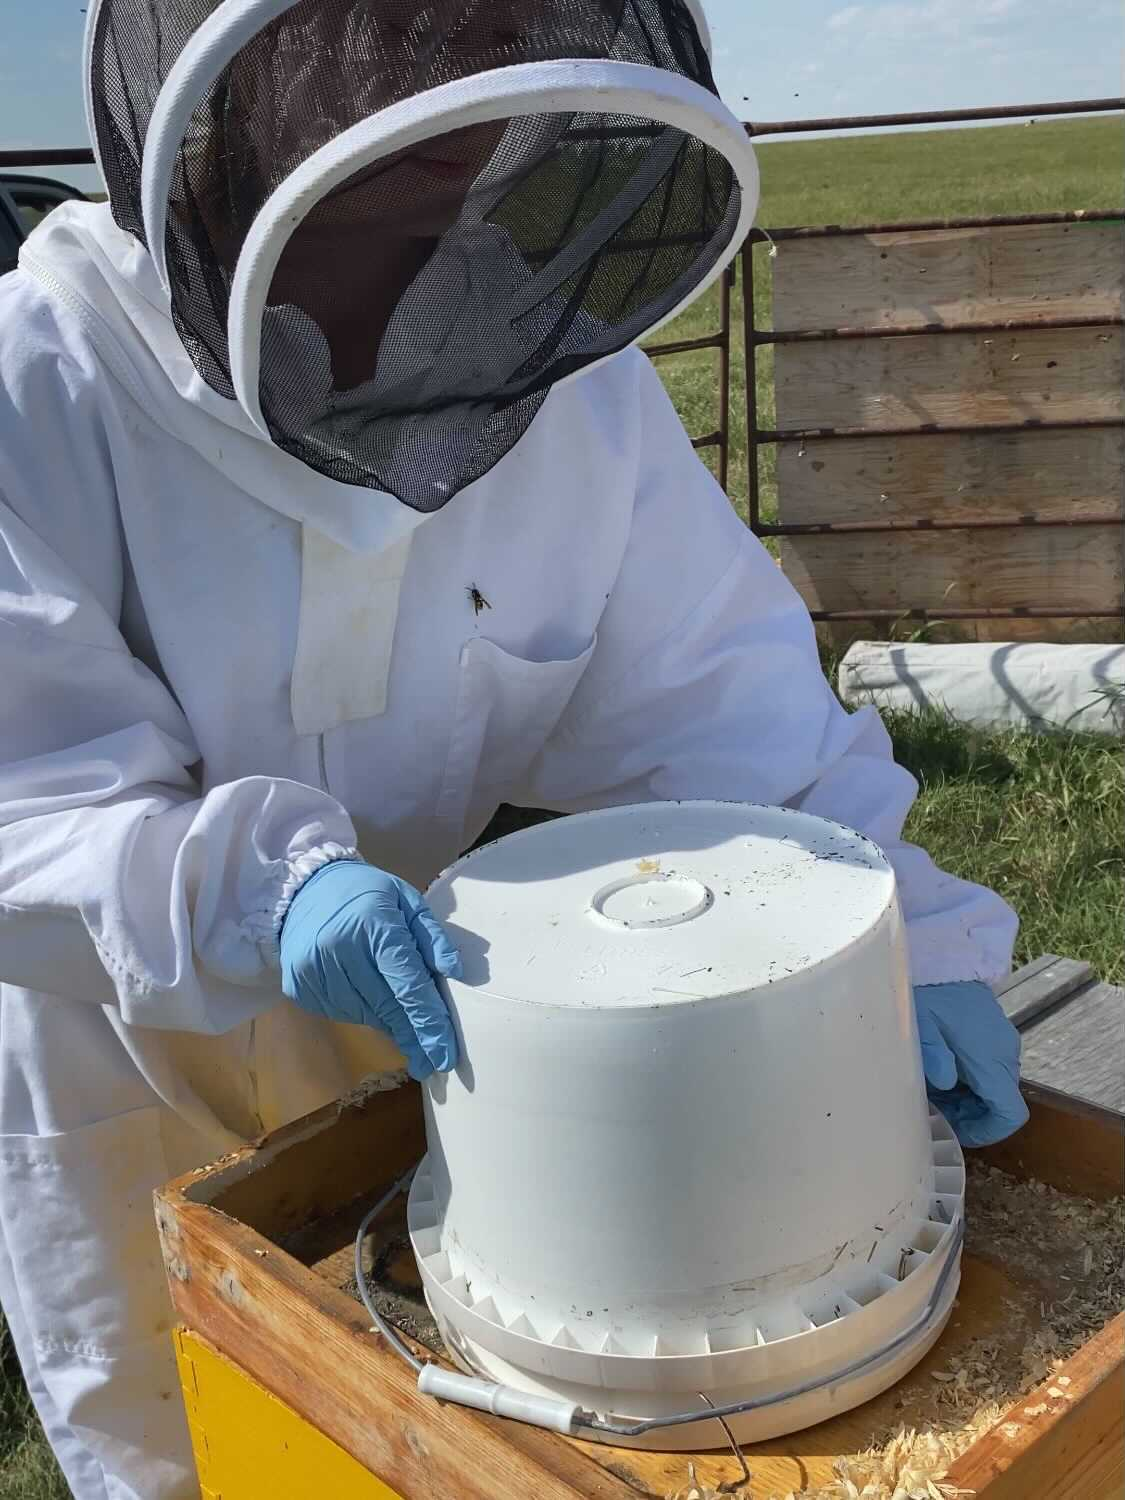 bucket feeder being placed on top of a hive